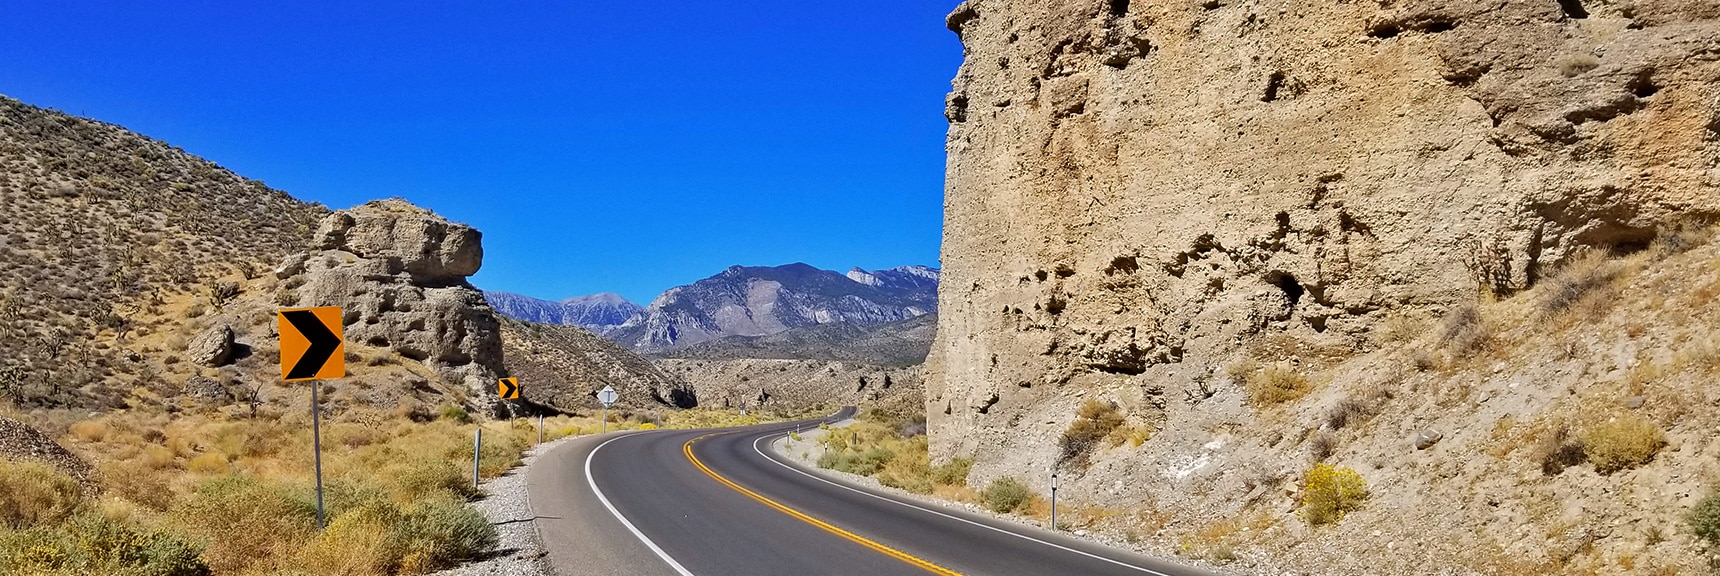 Grand Pillars on Kyle Canyon Road Opening to the Spring Mountains | Harris Springs Canyon | Biking from Centennial Hills | Spring Mountains, Nevada